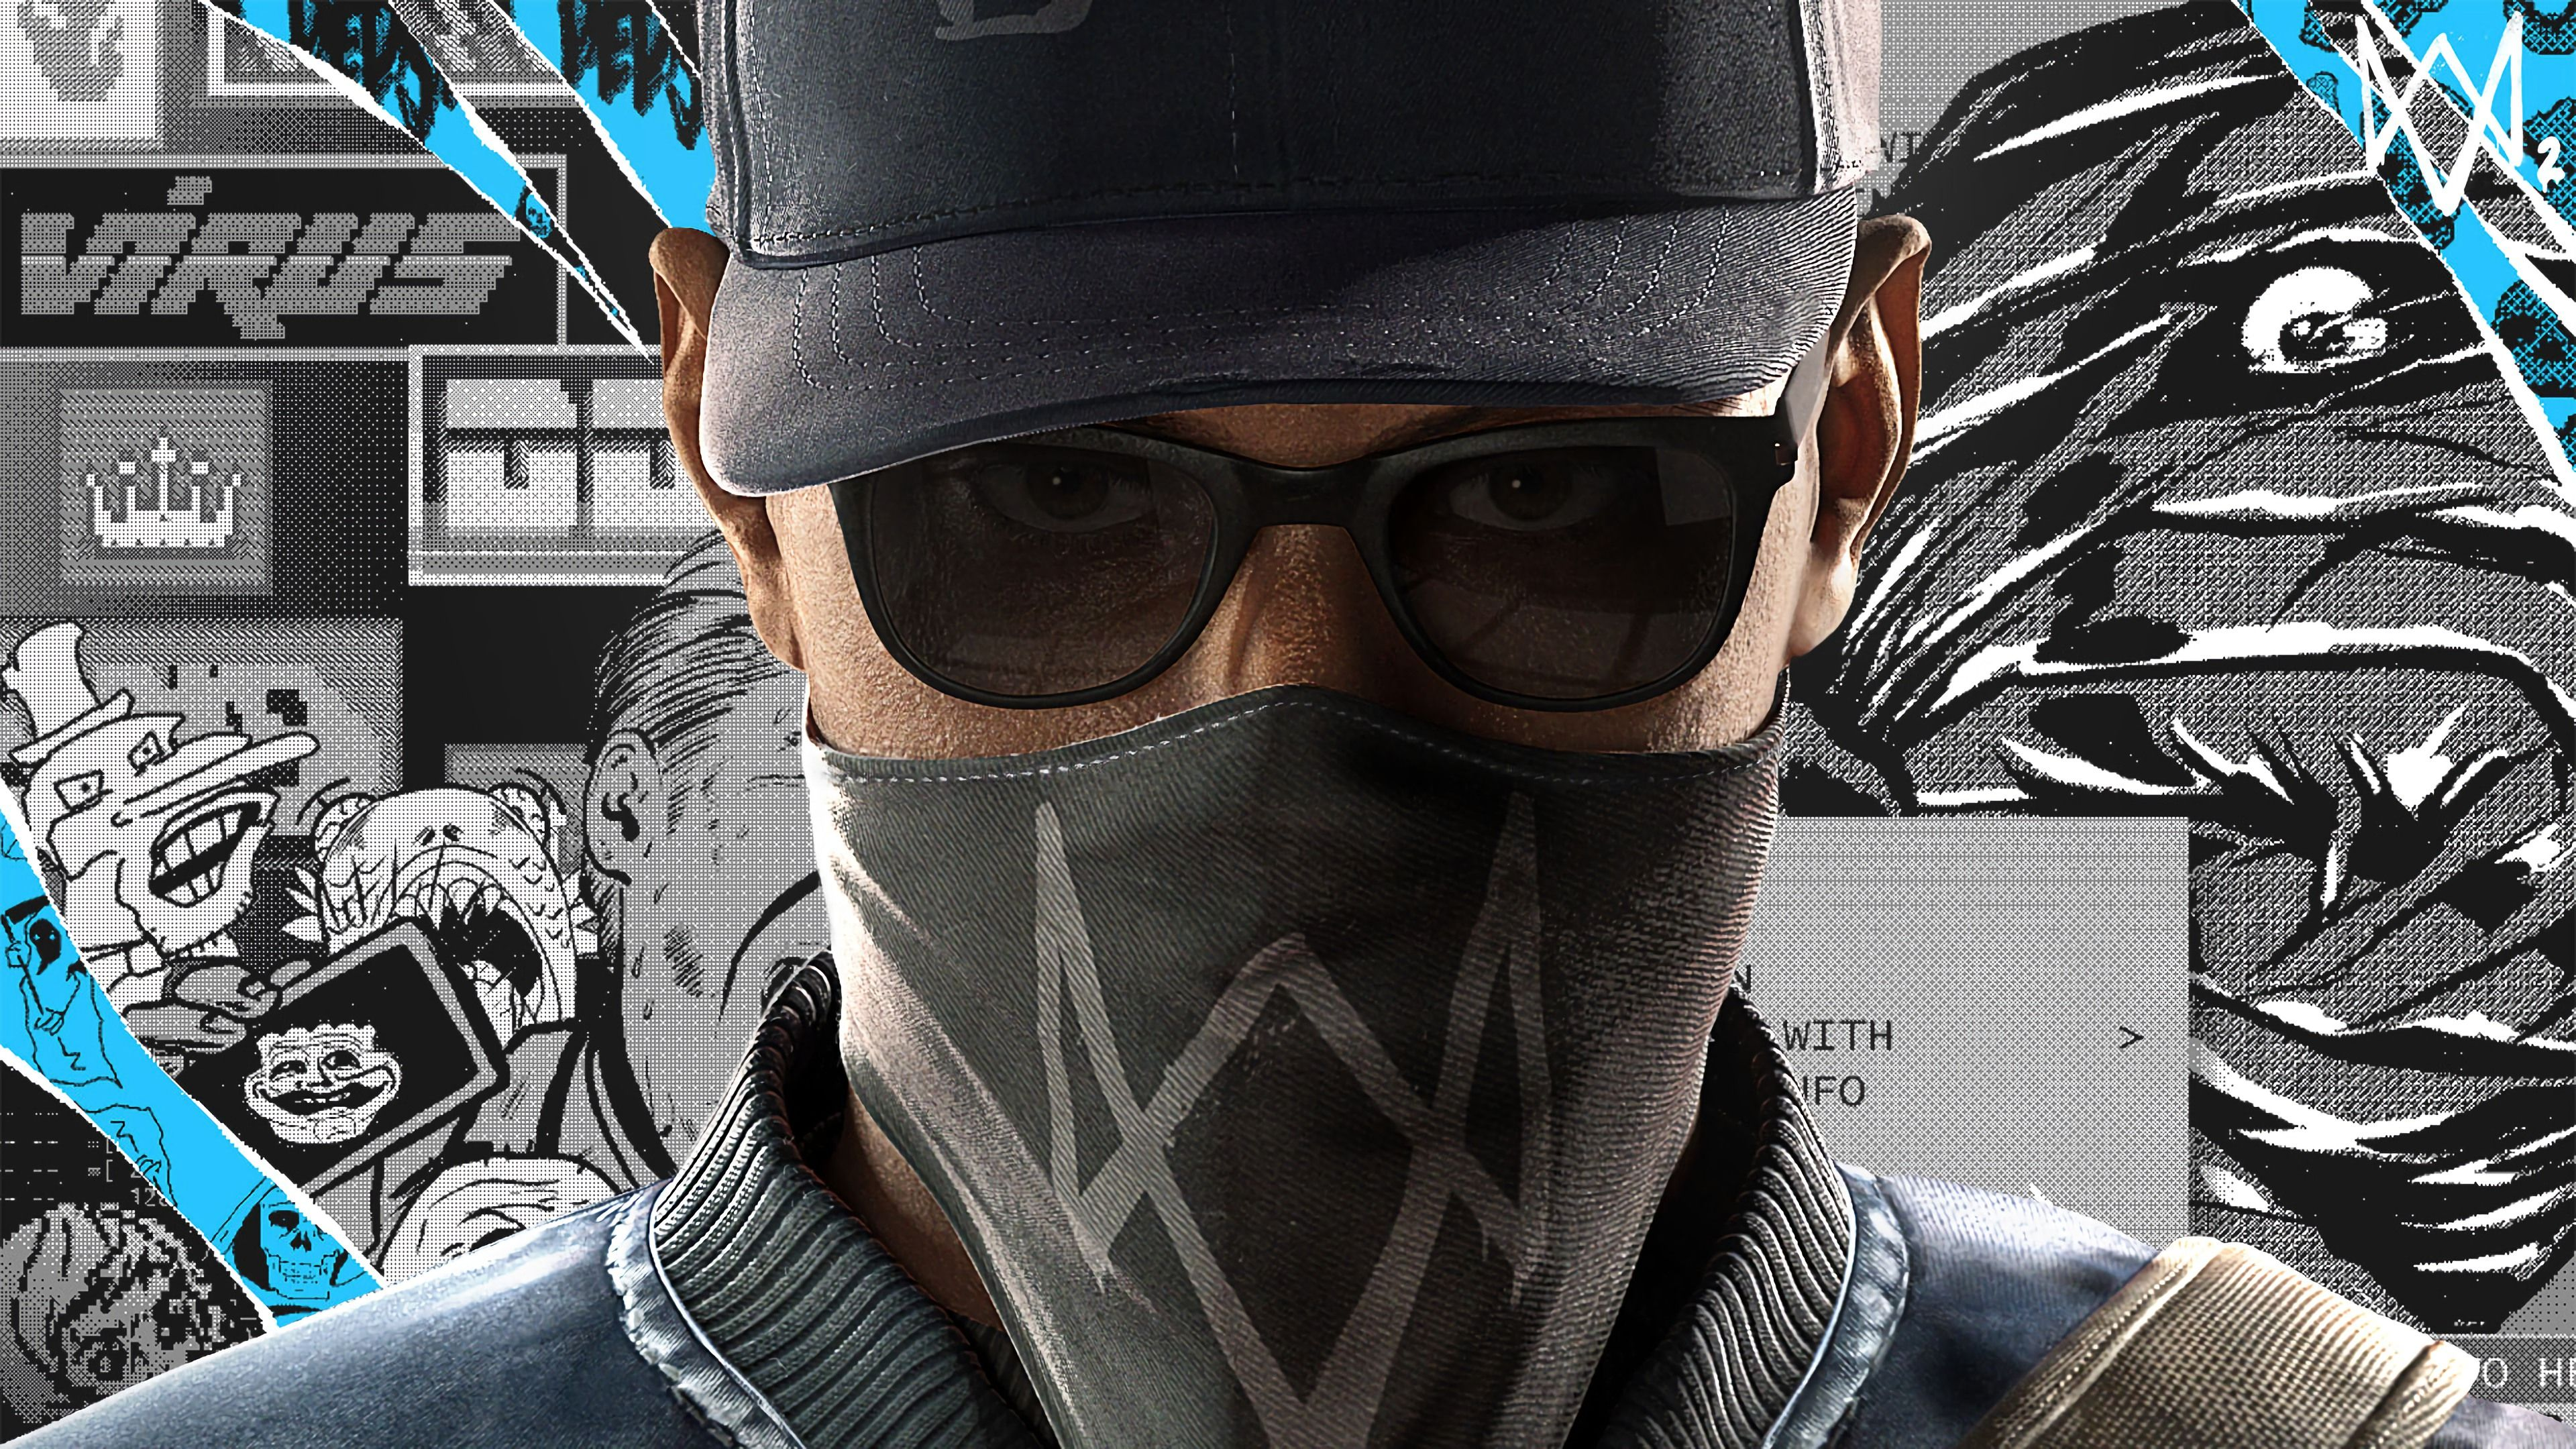 Watch Dogs 2 Marcus Holloway 4k Wallpapers Hd Wallpapers Watch Dogs Marcus Ubisoft